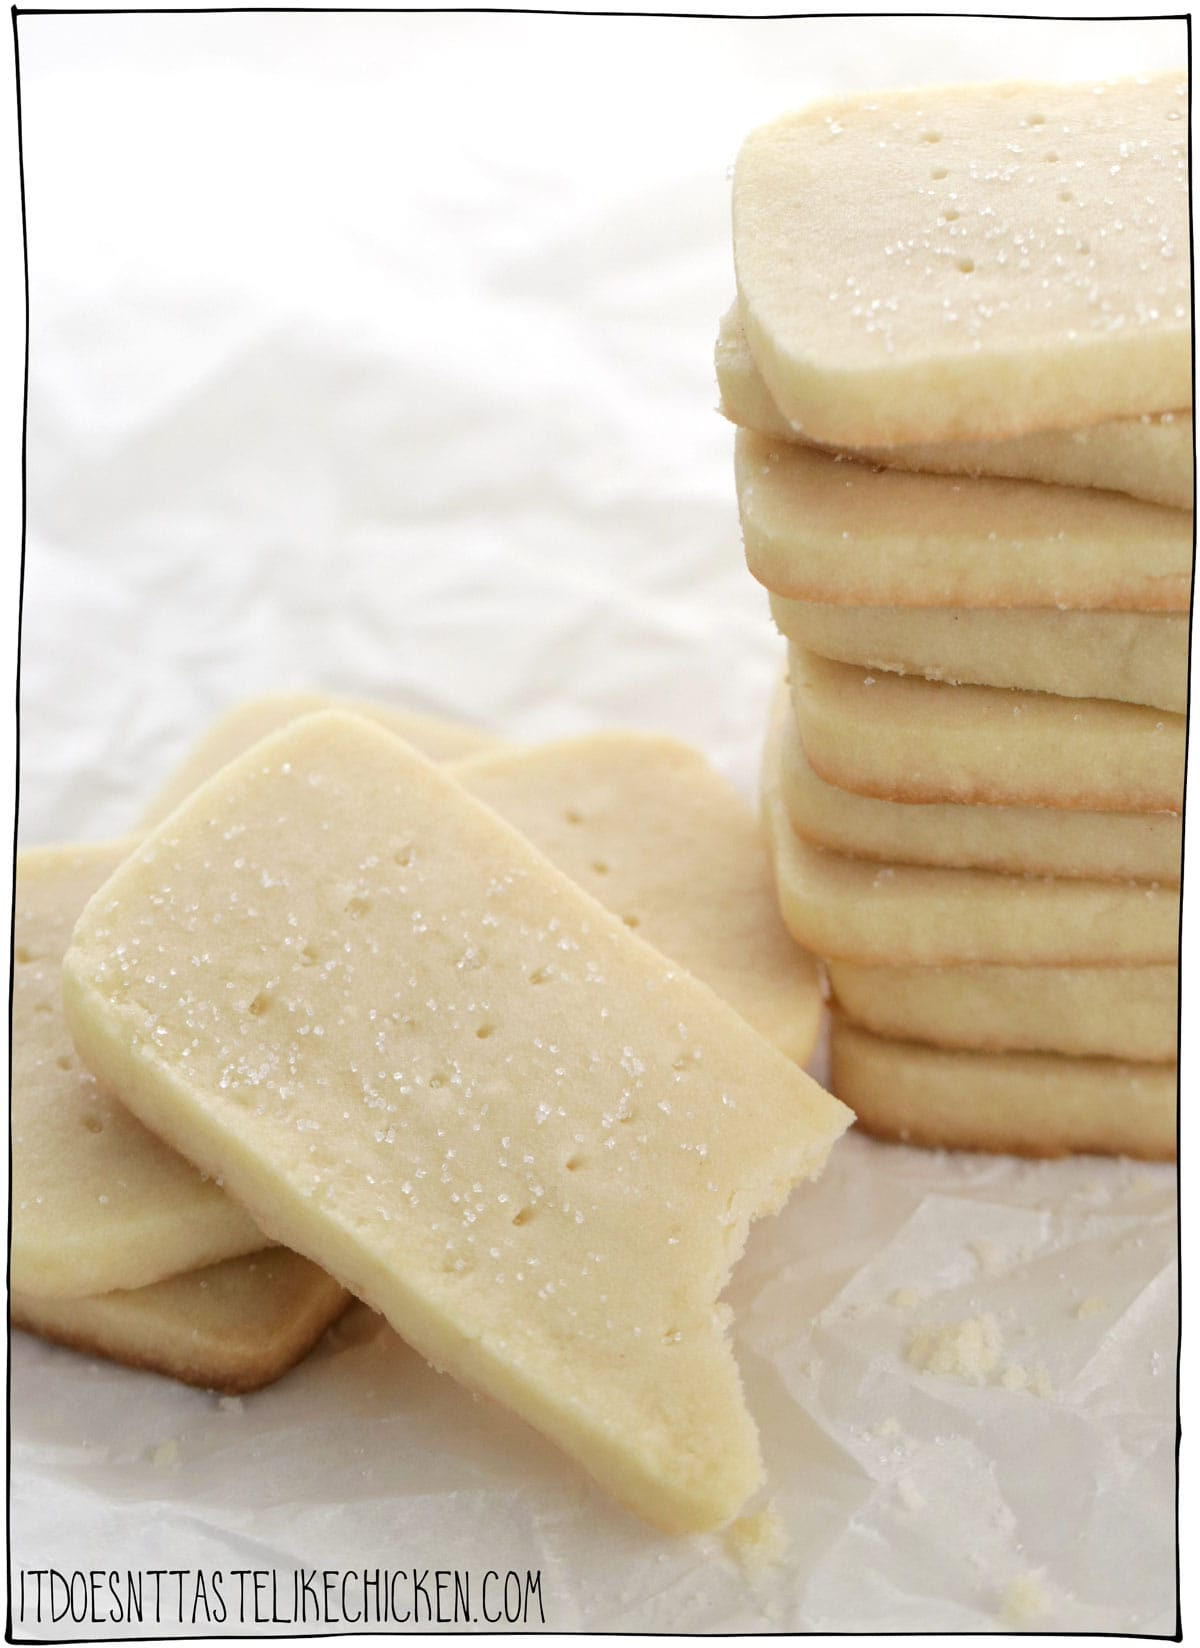 Easy Vegan Shortbread Cookies! Just 5 ingredients, and 20 minutes to make (plus chilling time). So simple, so buttery, melt in your mouth goodness. The cookie dough can be made ahead of time and even frozen if you like for easy cookie prep. Perfect for all the holidays: Christmas, Easter, Valentine's Day, or on any old day with a cup of coffee or tea. #itdoesnttastelikechicken #veganbaking #vegandesserts